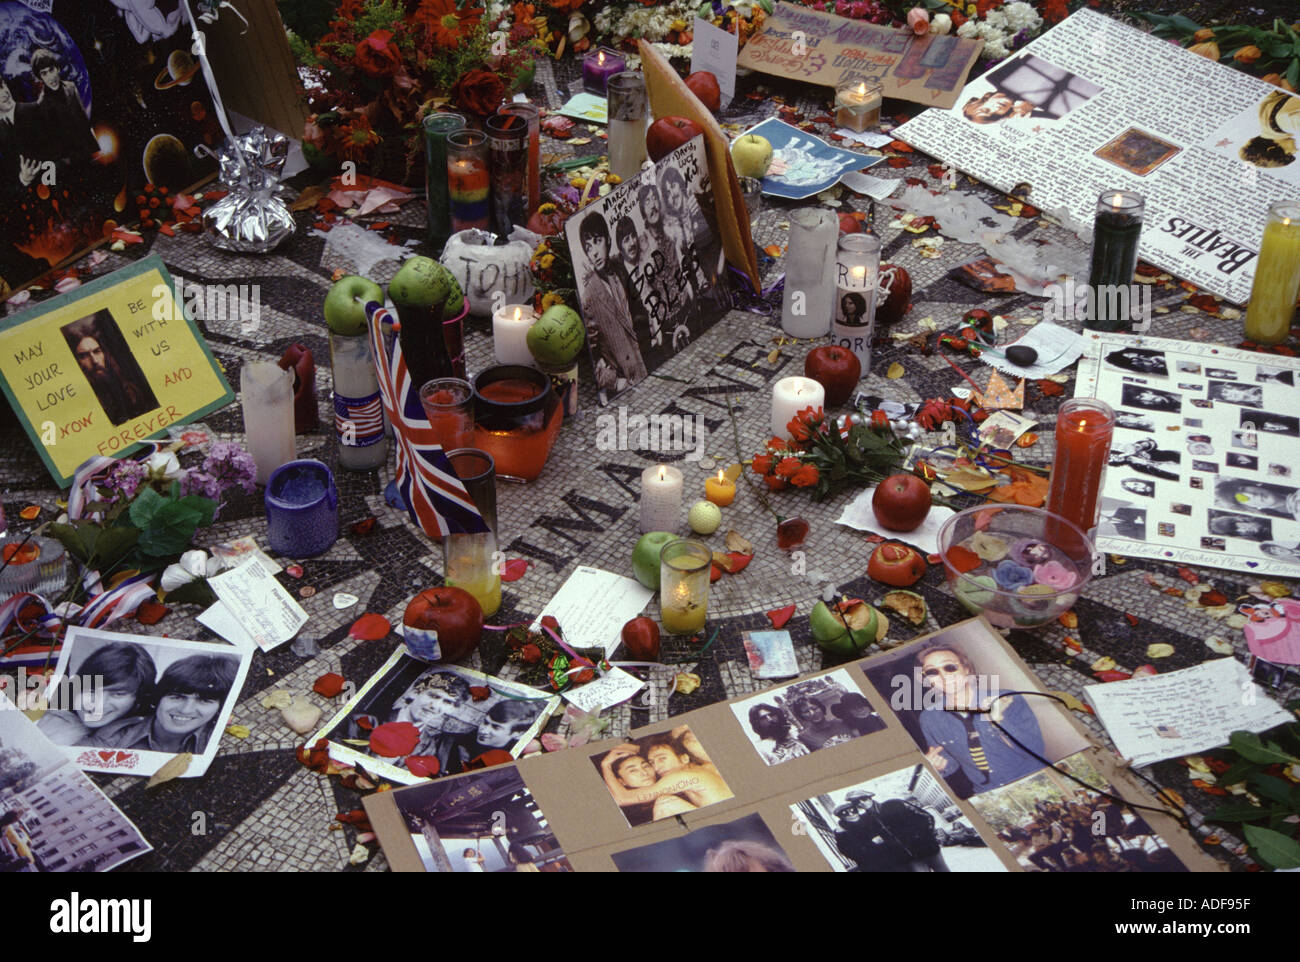 George Harrison memorial at Strawberry Fields in New York after his death in 2001 - Stock Image